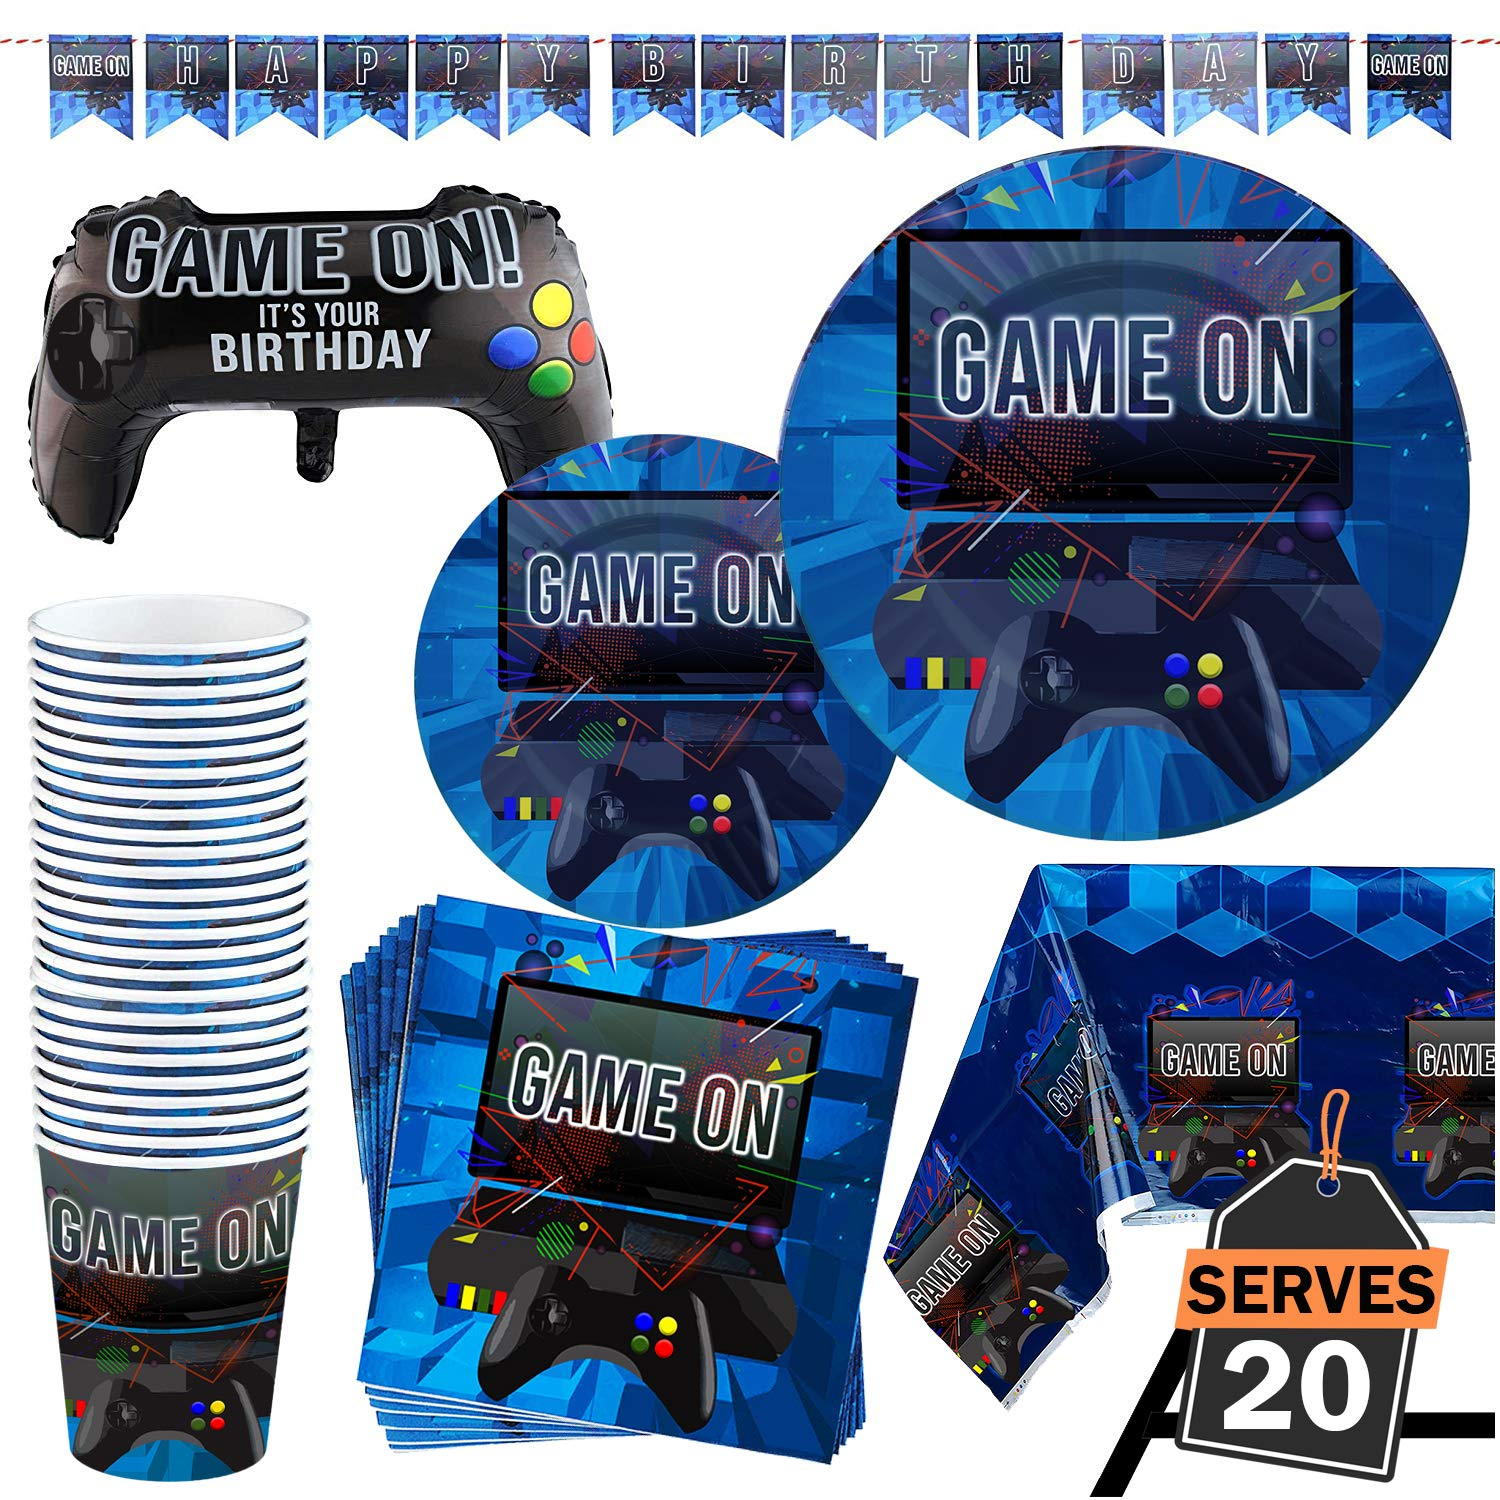 Video Game Party Bundles for 20 Guests